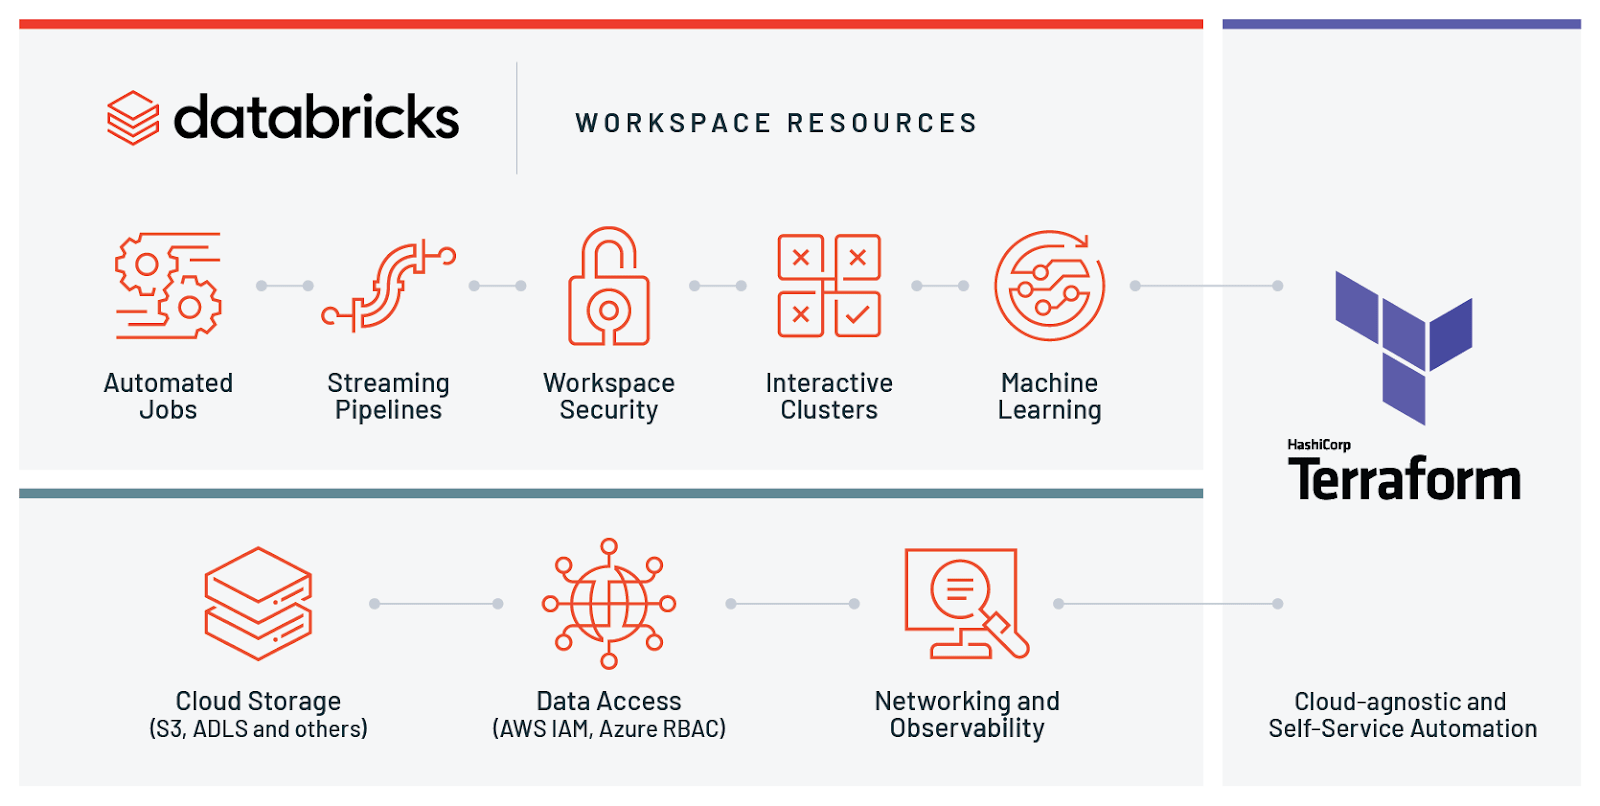 Architecture for managing Databricks workspaces on Azure and AWS via Terraform.